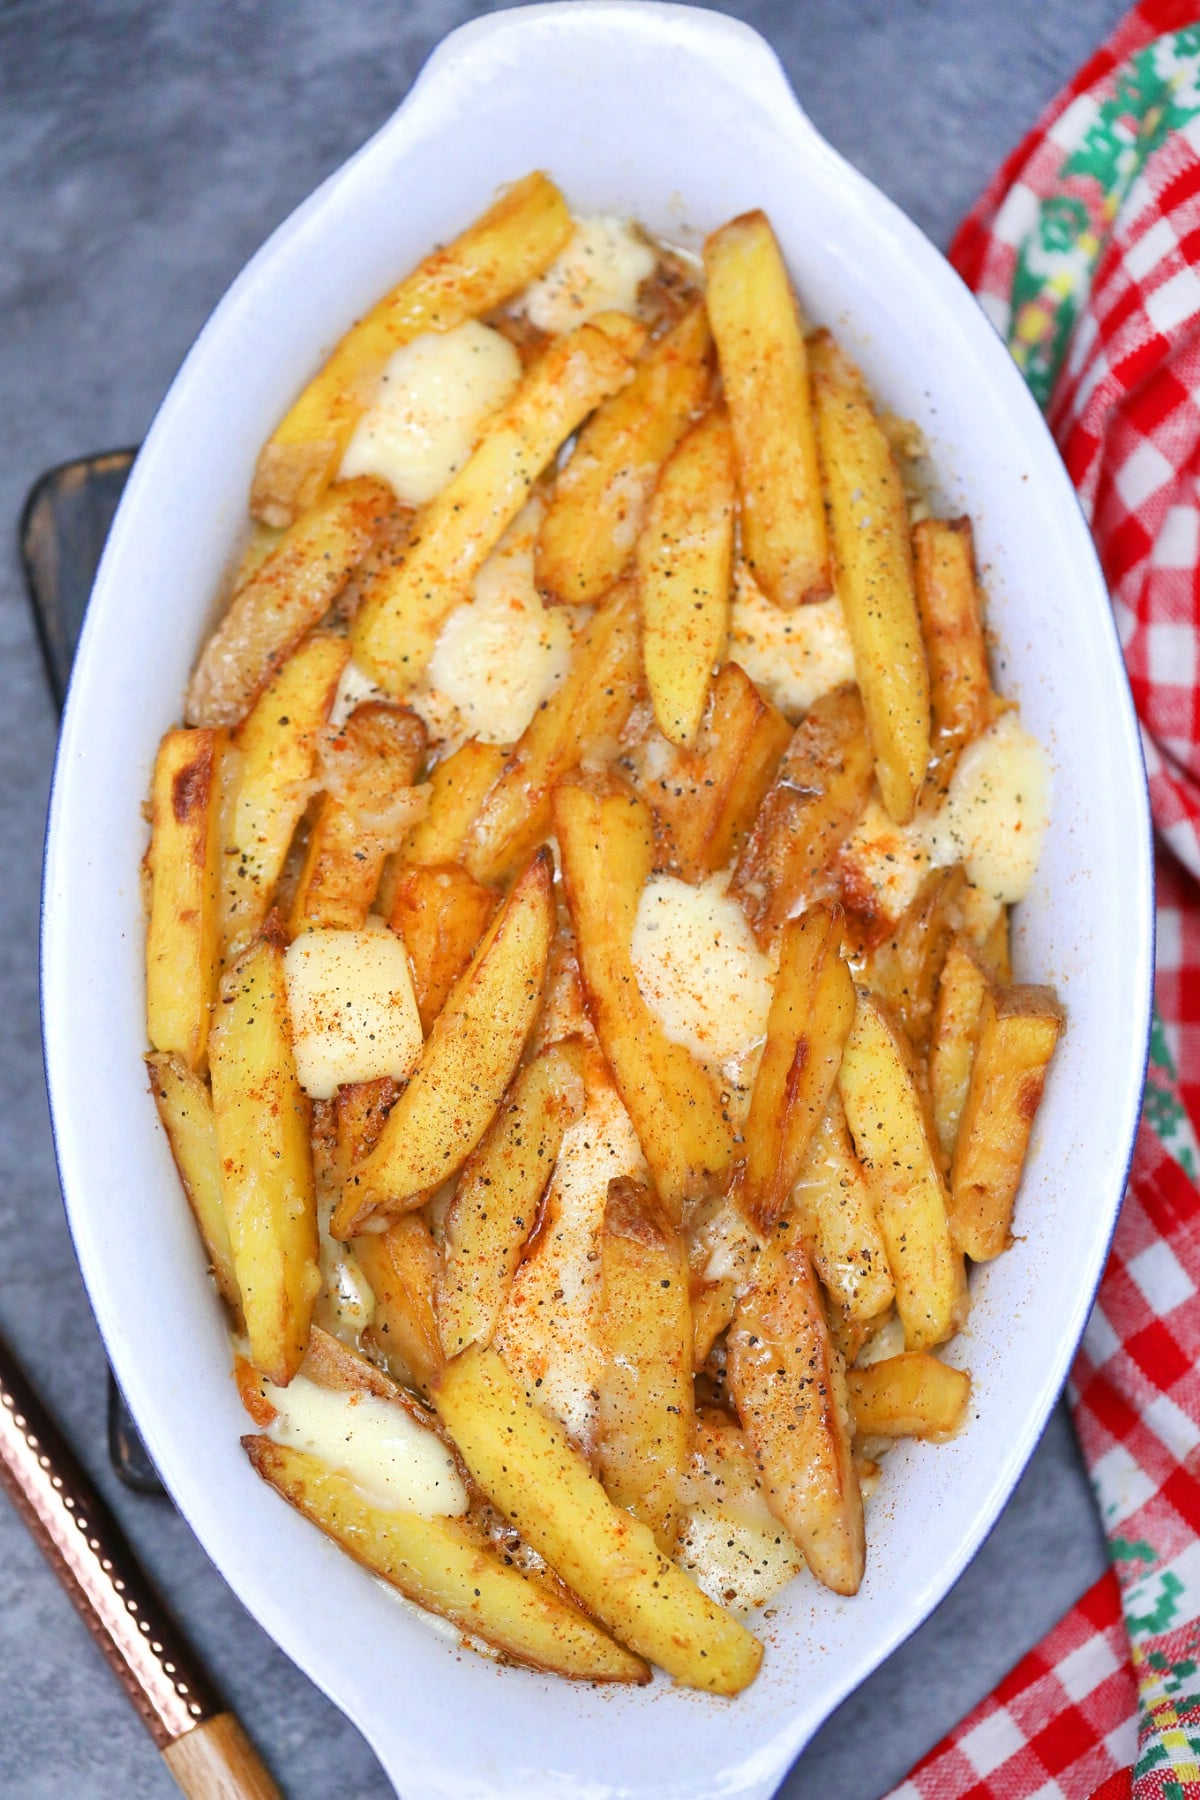 Fries with gravy and cheese on white platter